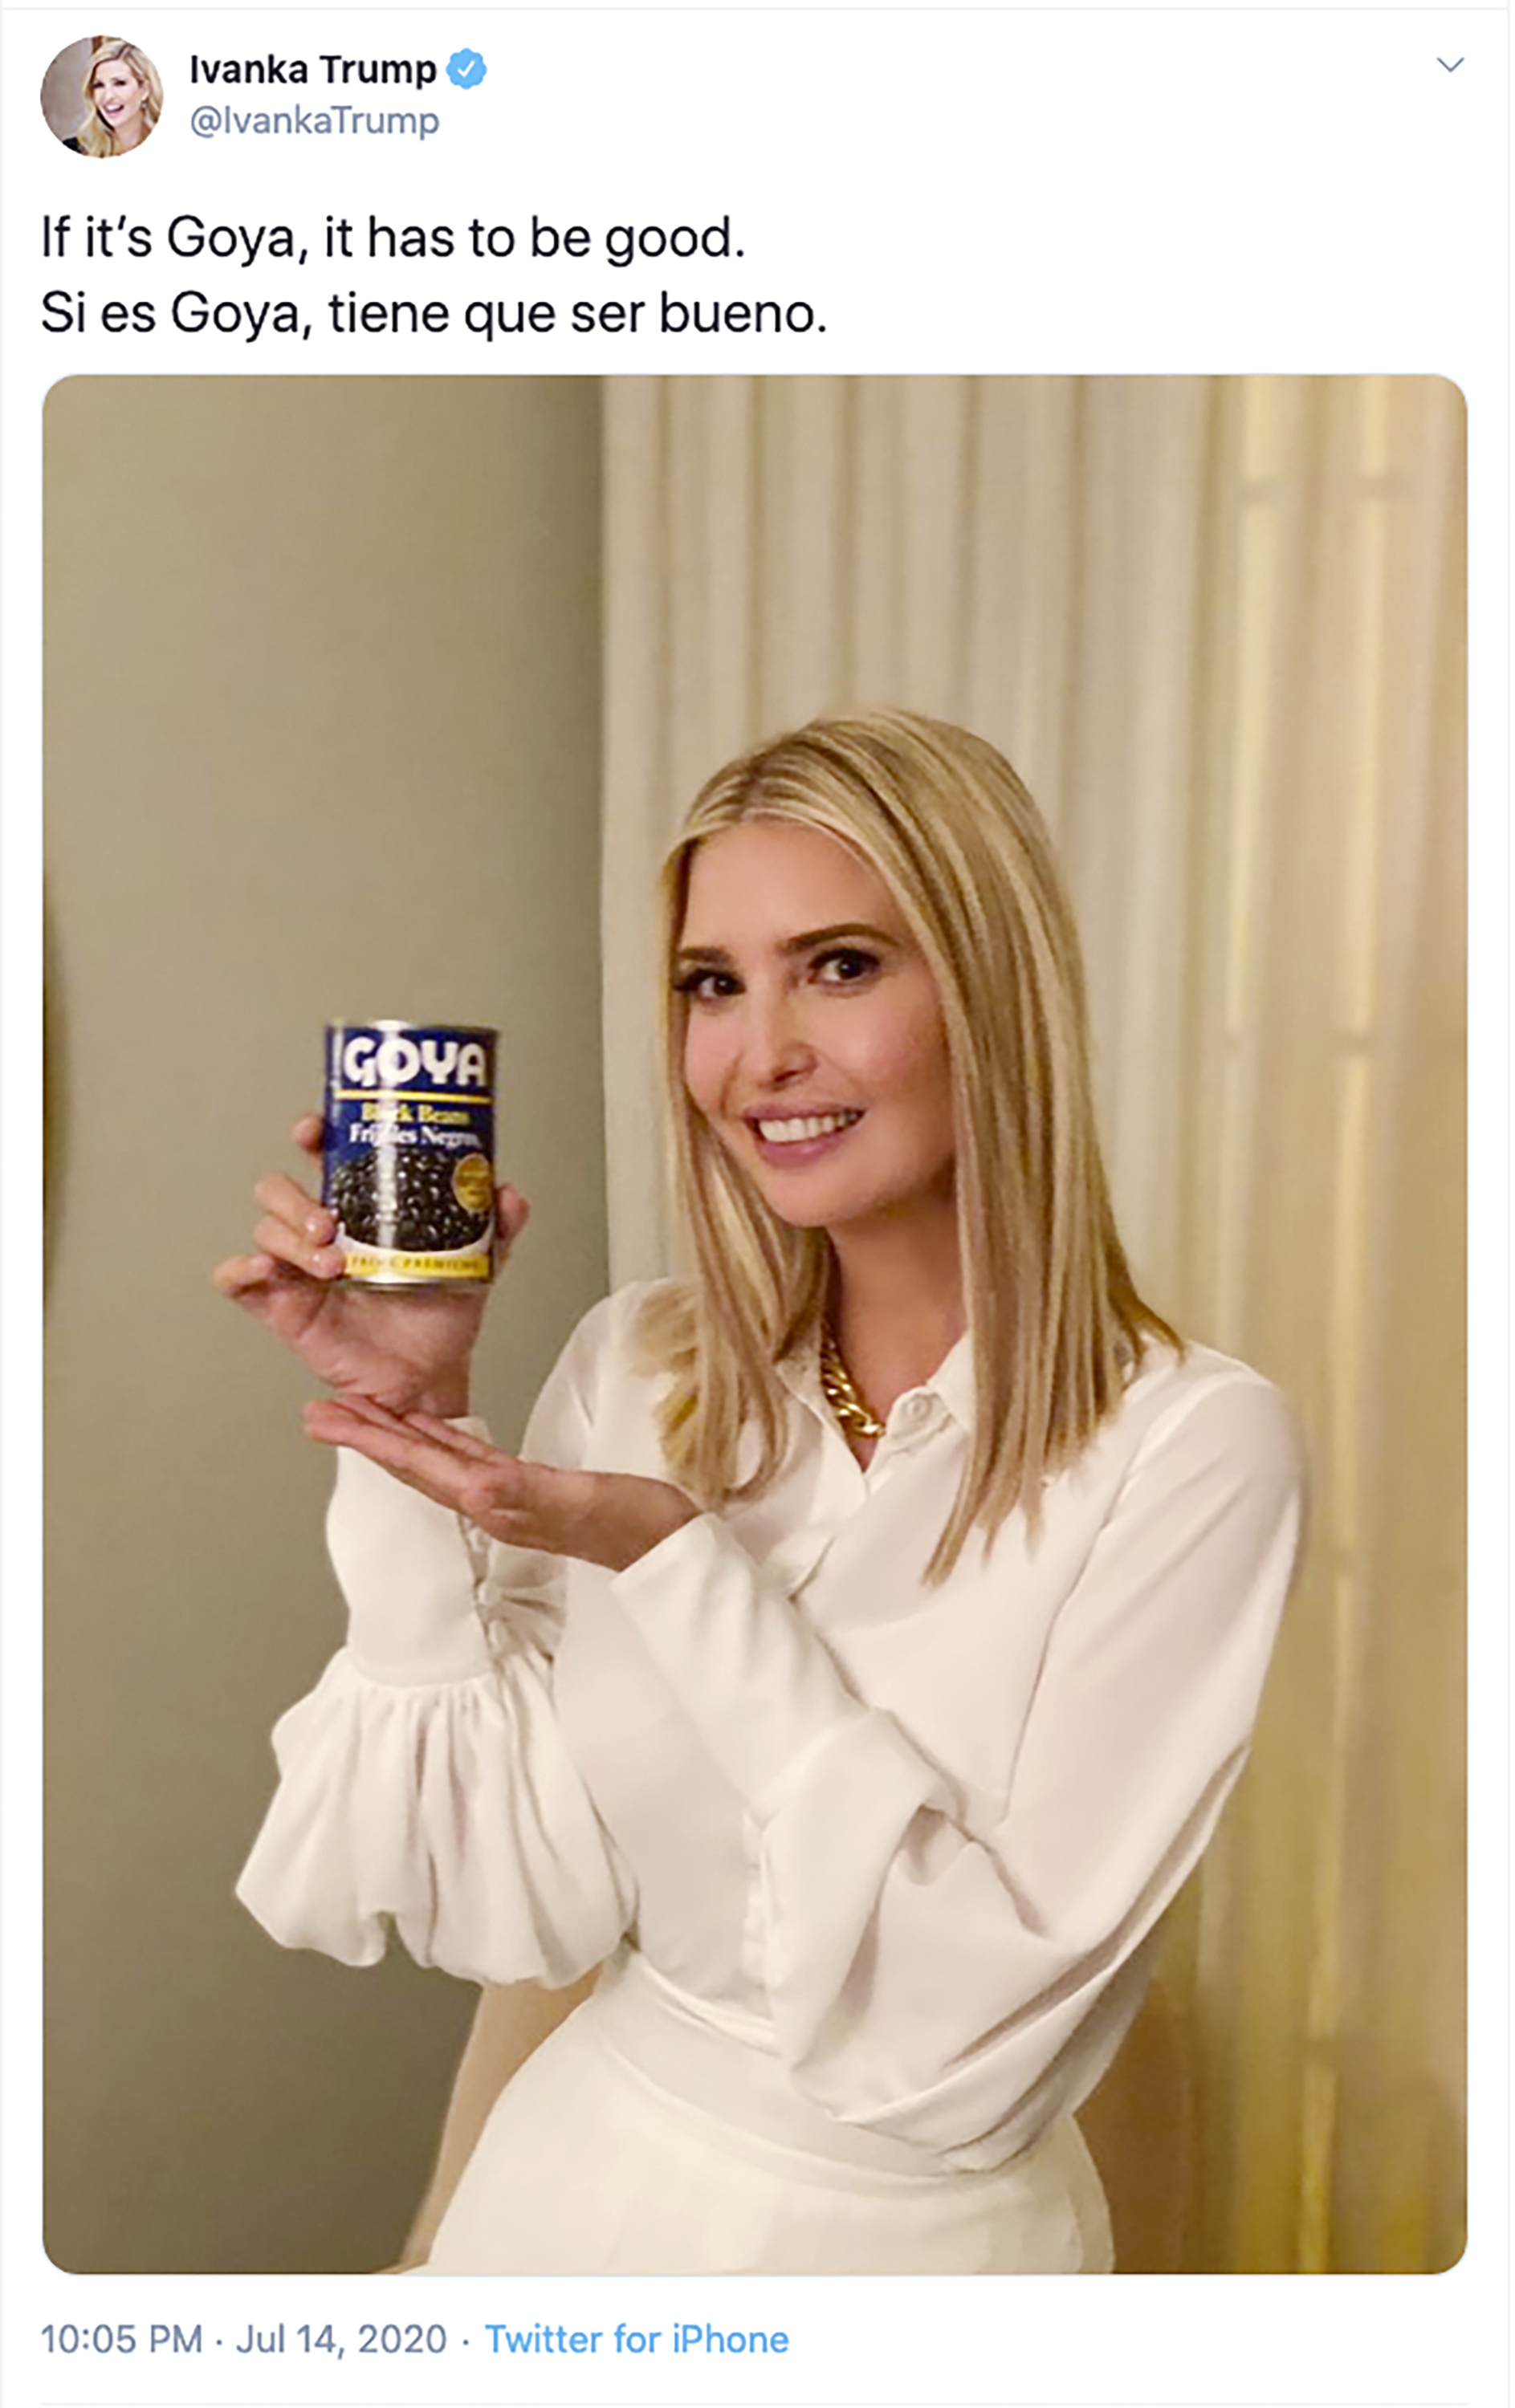 This image taken from Ivanka Trump's Twitter account shows her holding a can of Goya beans along with the words  If it's Goya, it has to be good  written in English and Spanish on July 14, 2020.